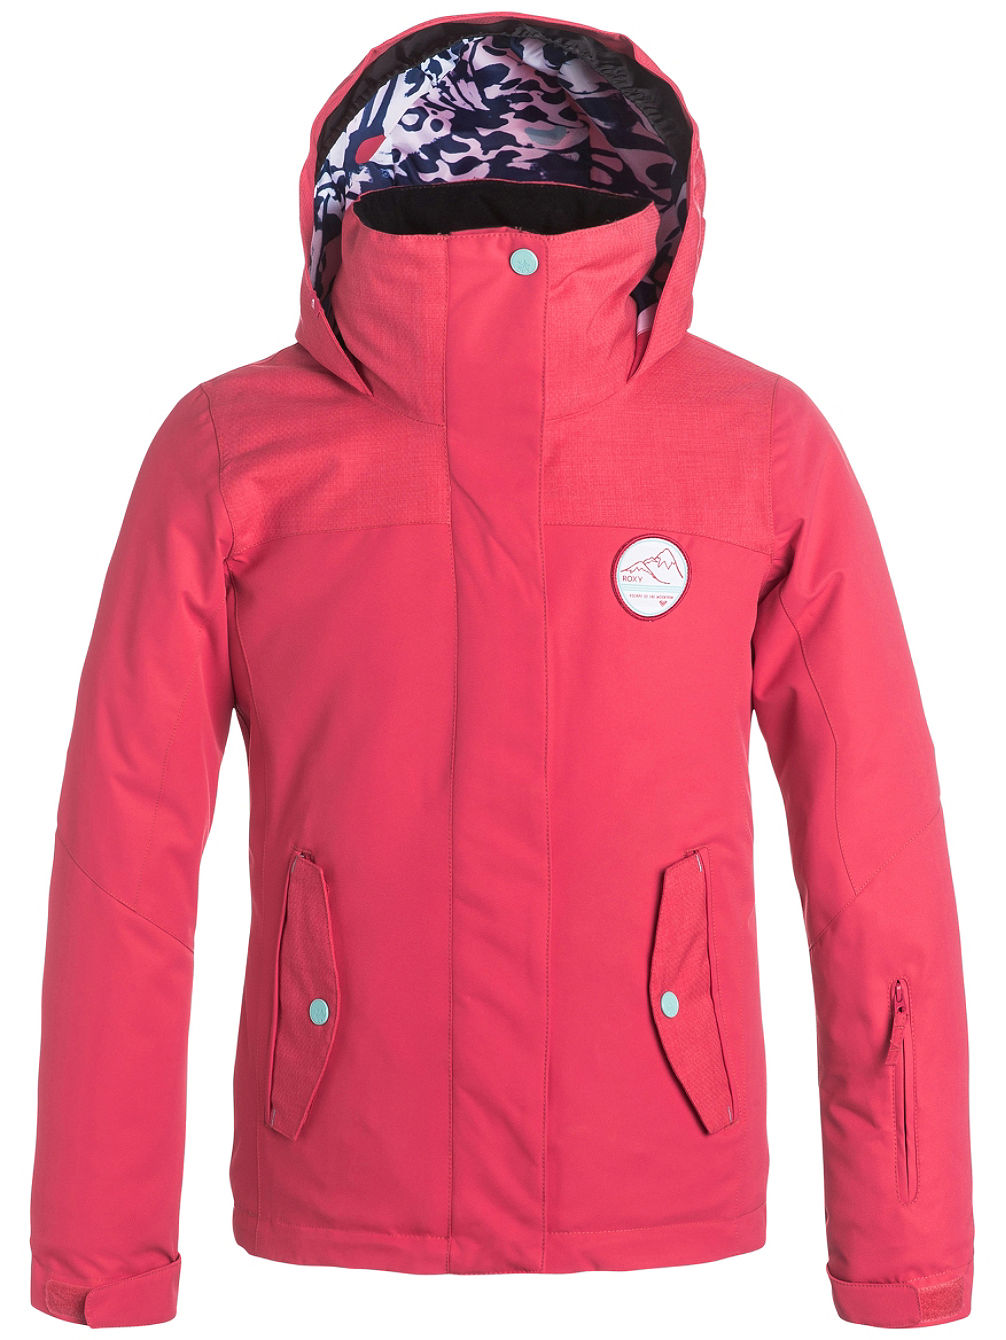 494a21fc2 Buy Roxy Jetty Girl Solid Jacket Girls online at Blue Tomato